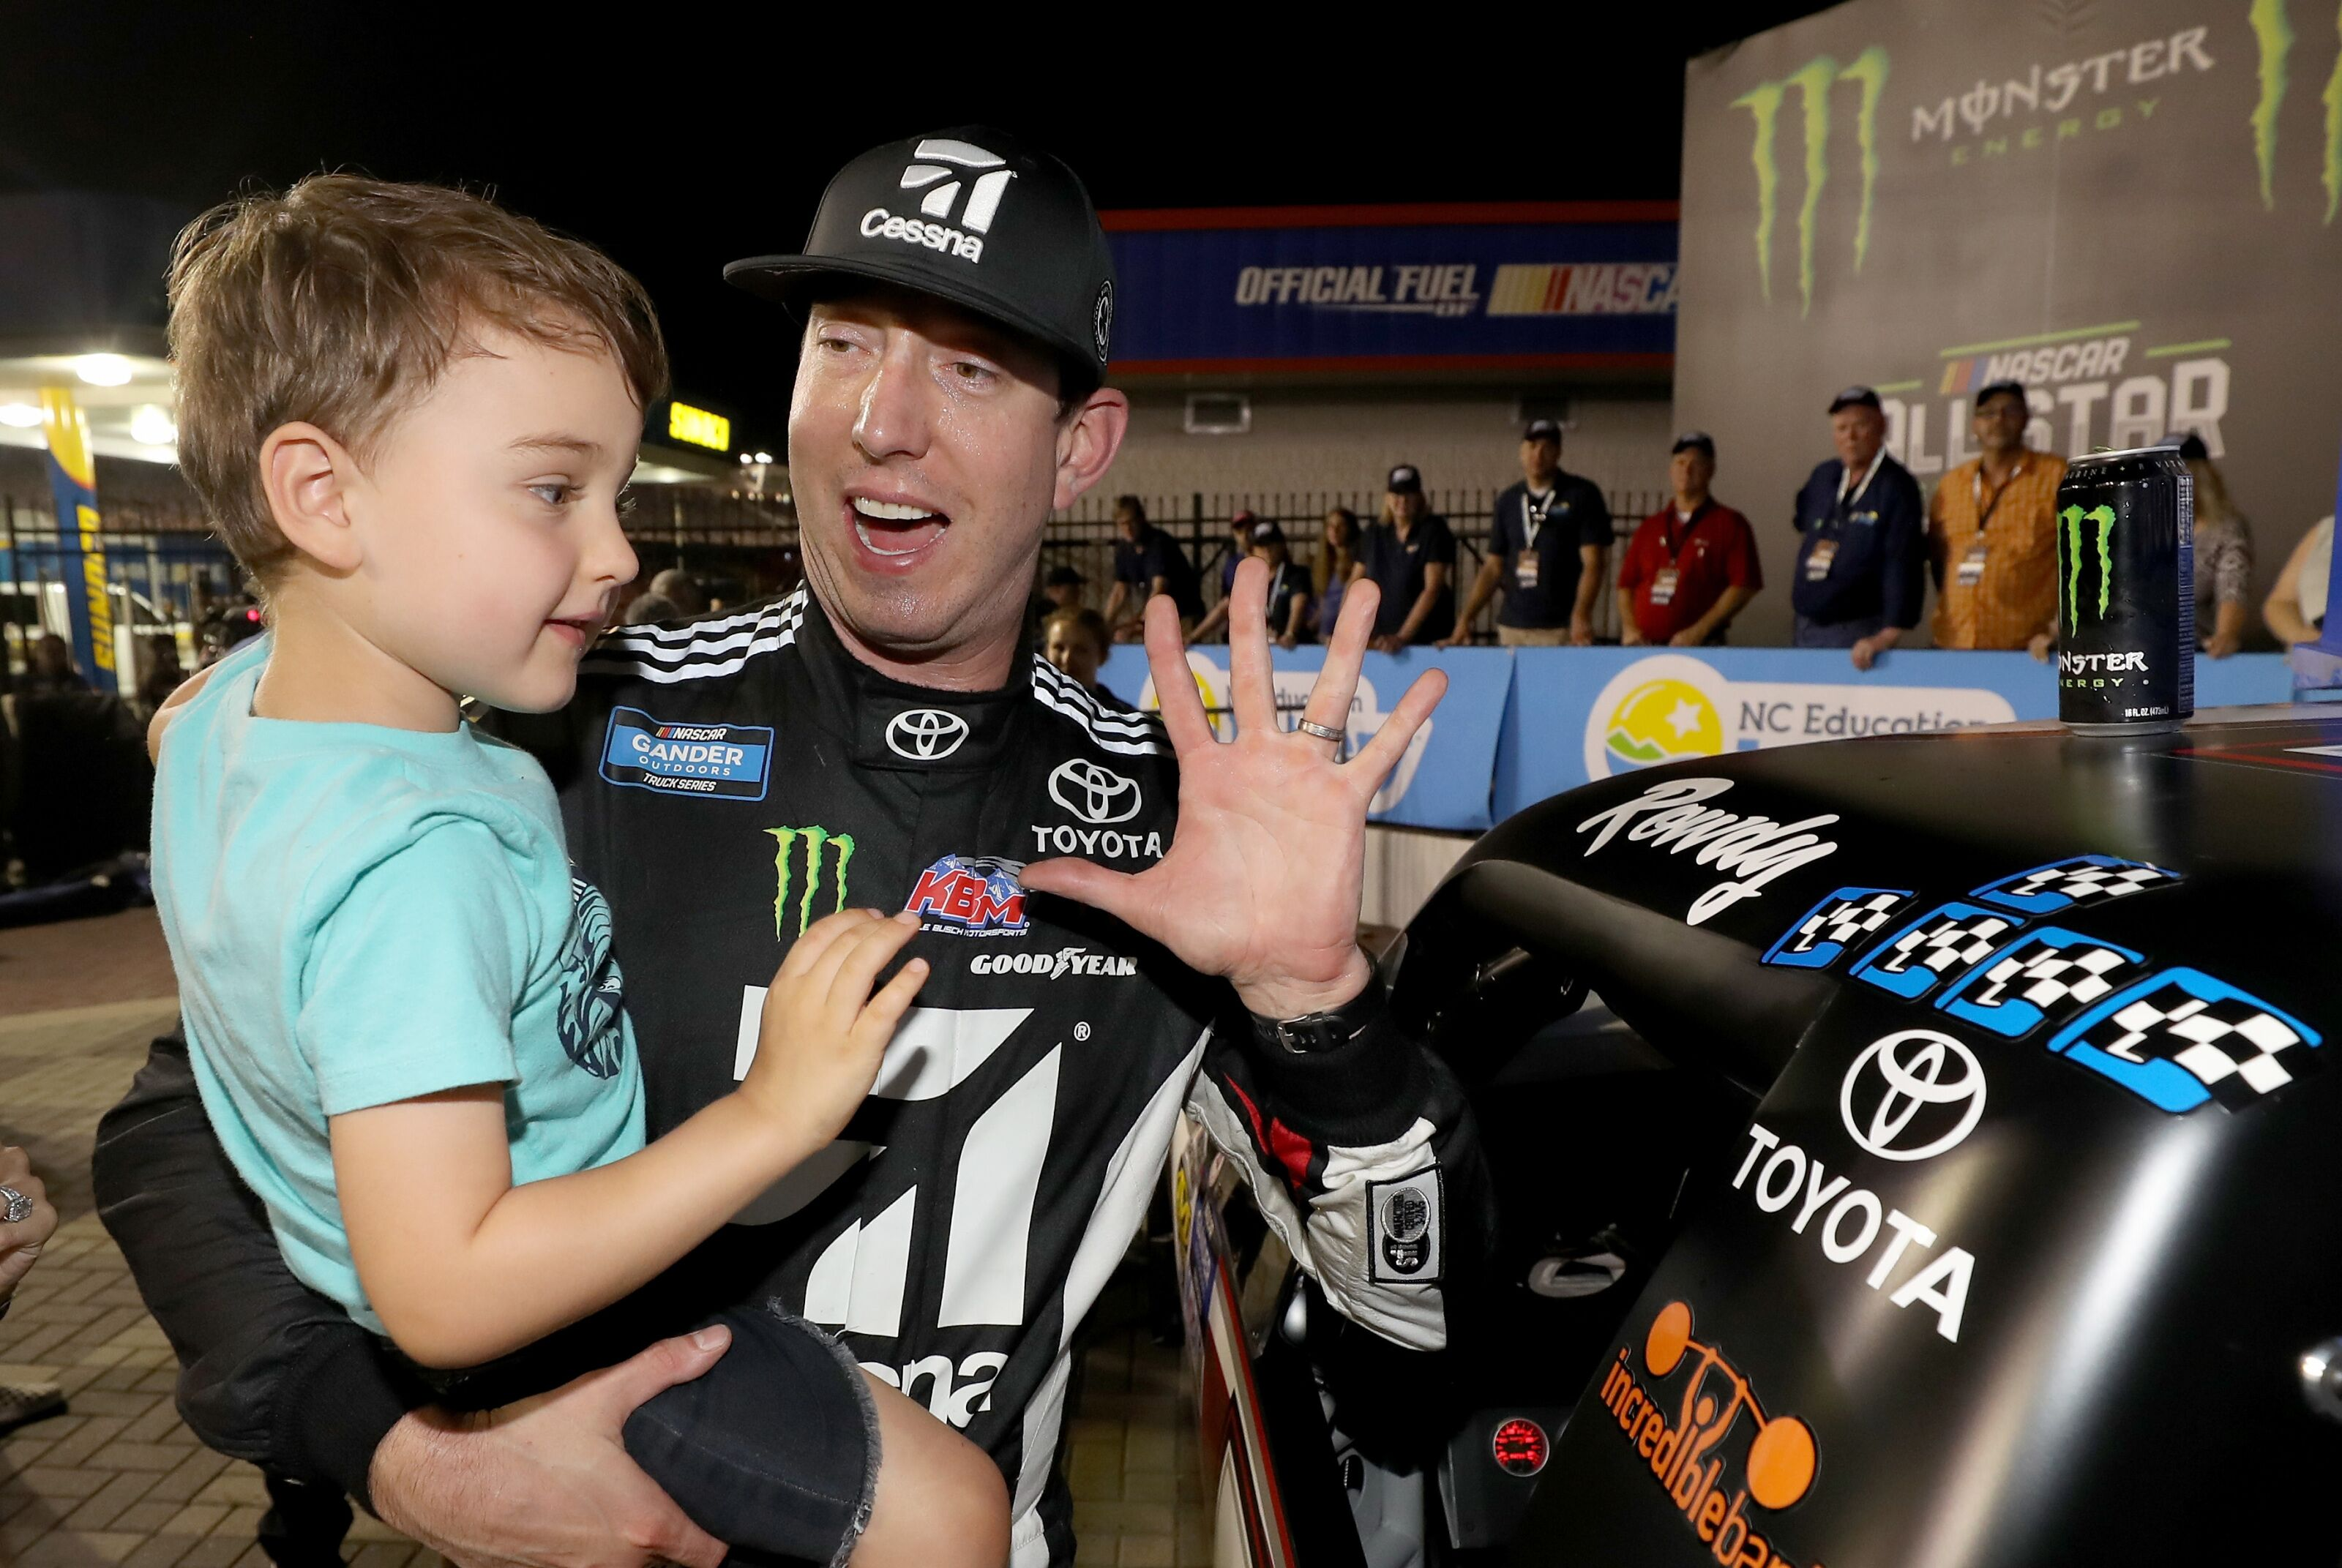 NASCAR: Should Cup drivers be allowed to moonlight in lower series?